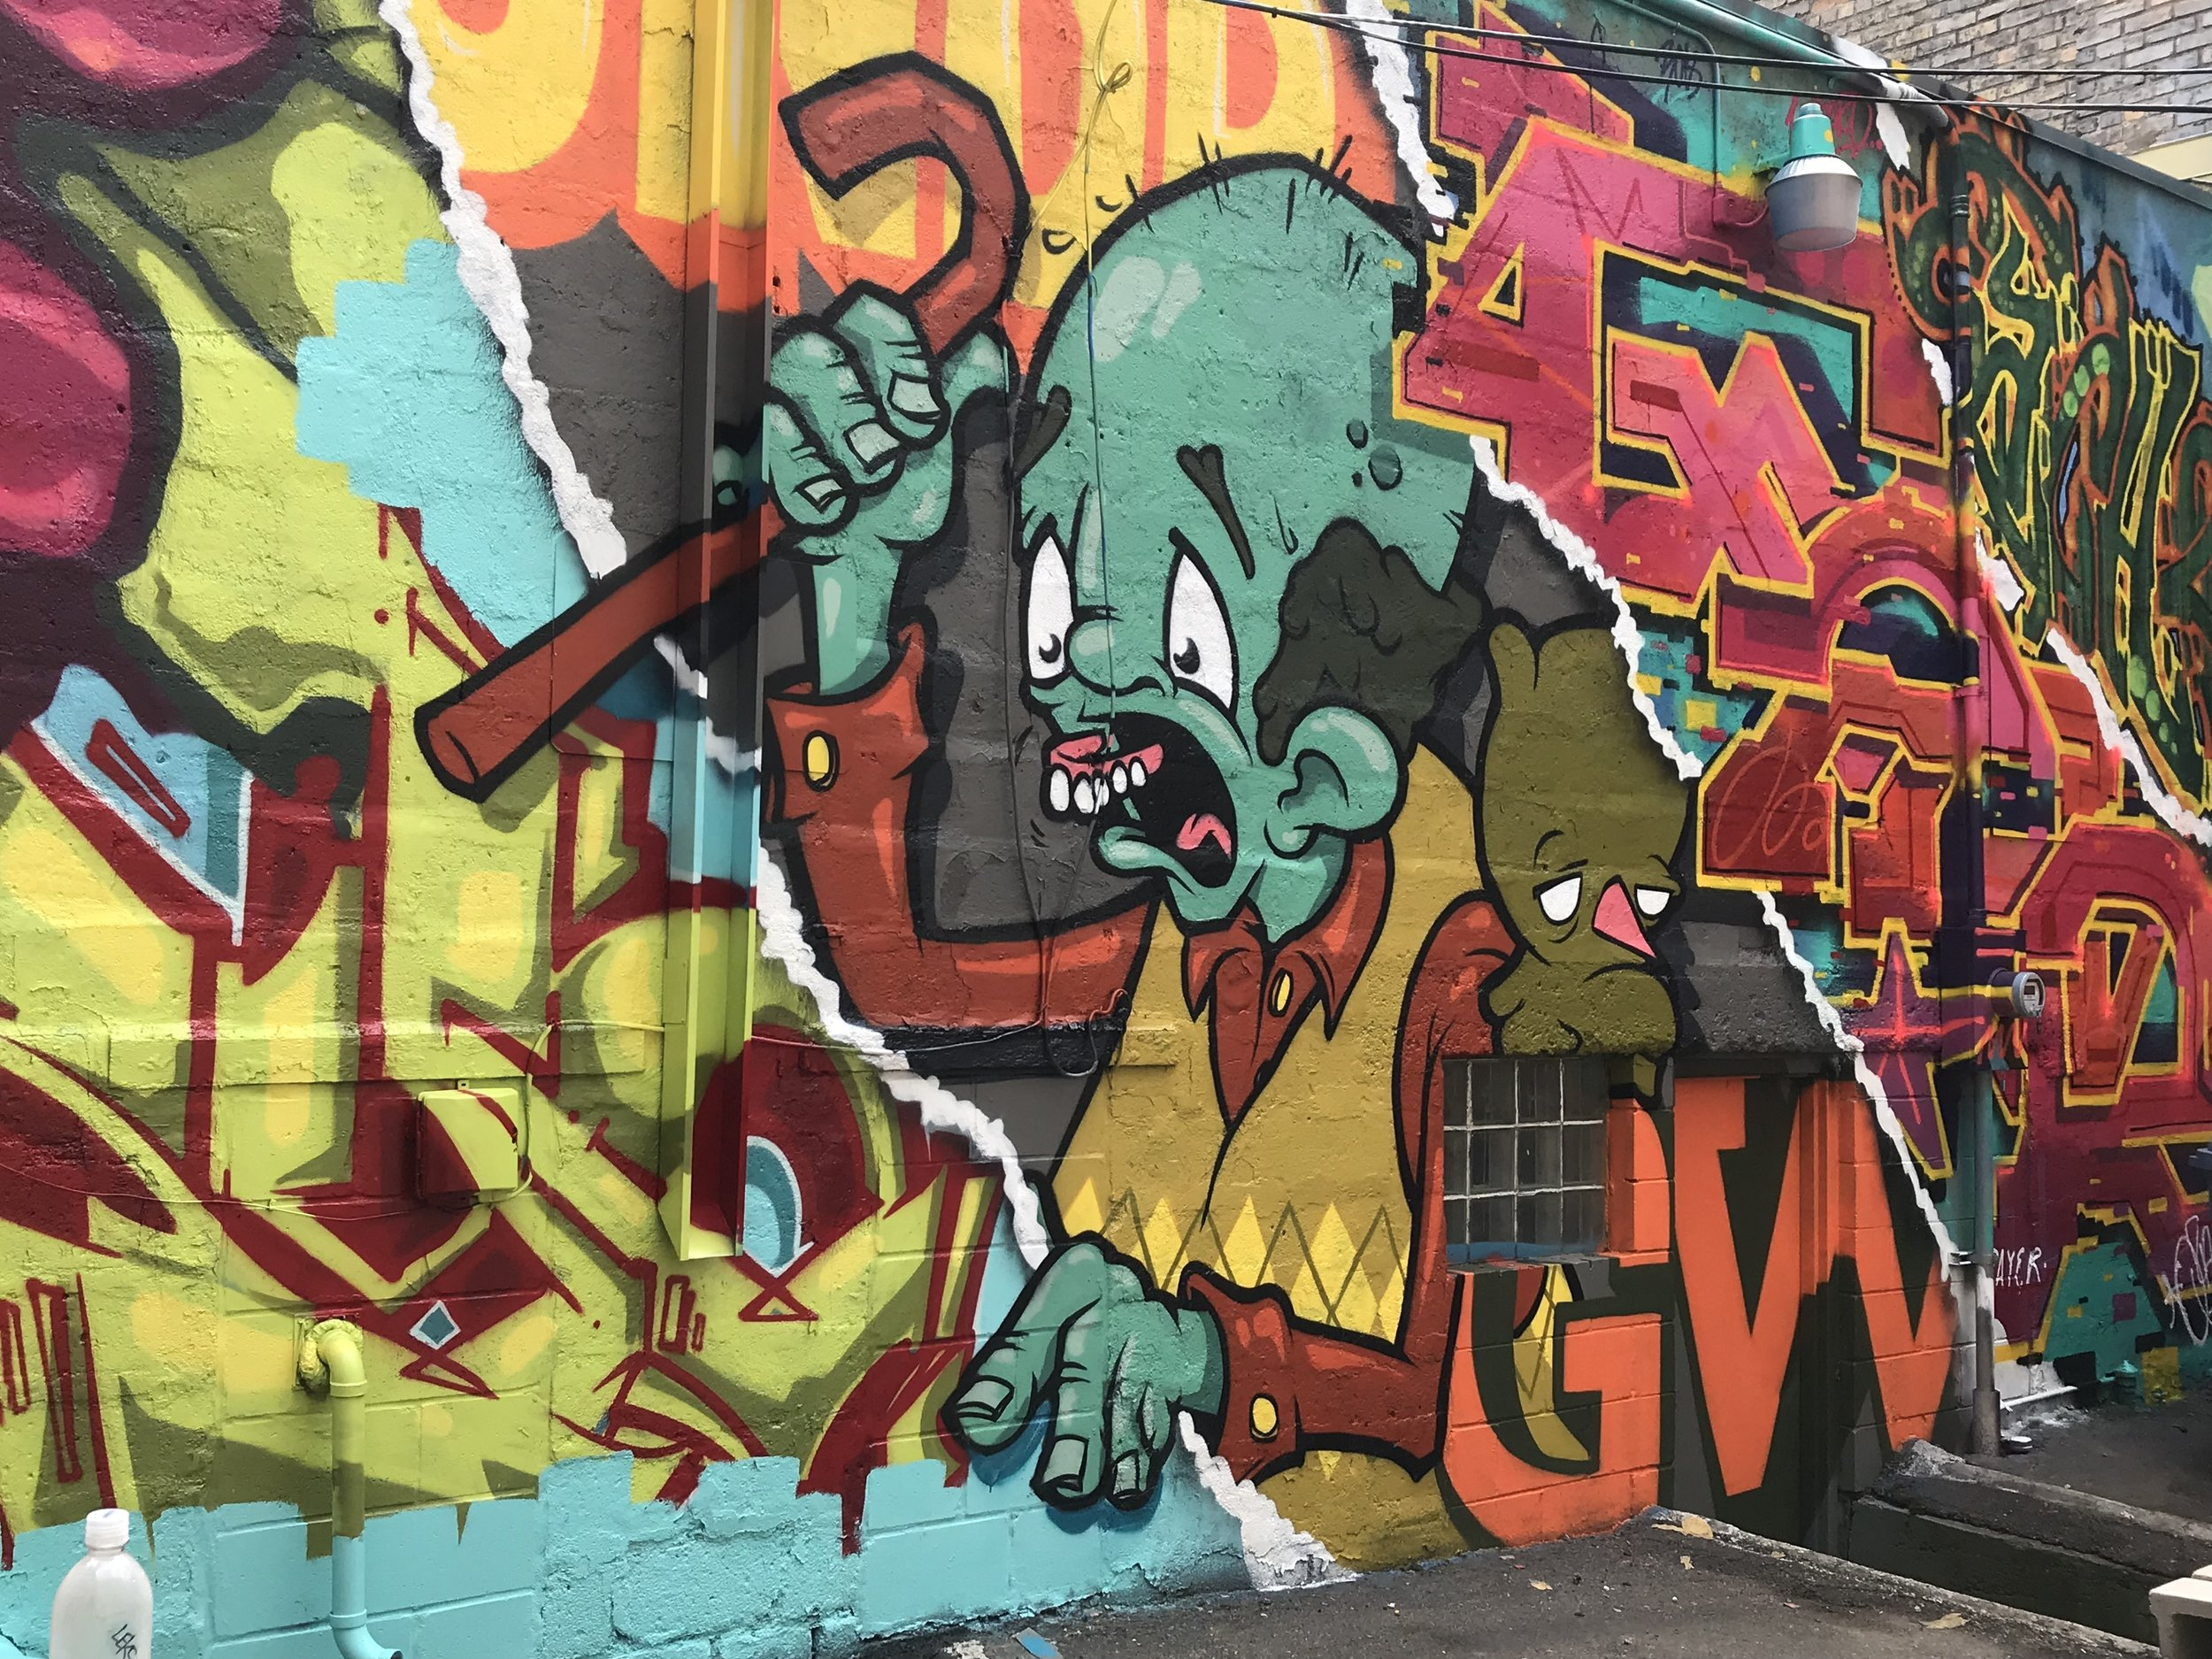 MURAL BEHIND lEGACY gLASSWORKS MADE DURING LYN LAKE STREET ART SERIES 2018  aRTISTS FROM LEFT TO RIGHT: RYOE/bIFRA/QZAR/EACH2